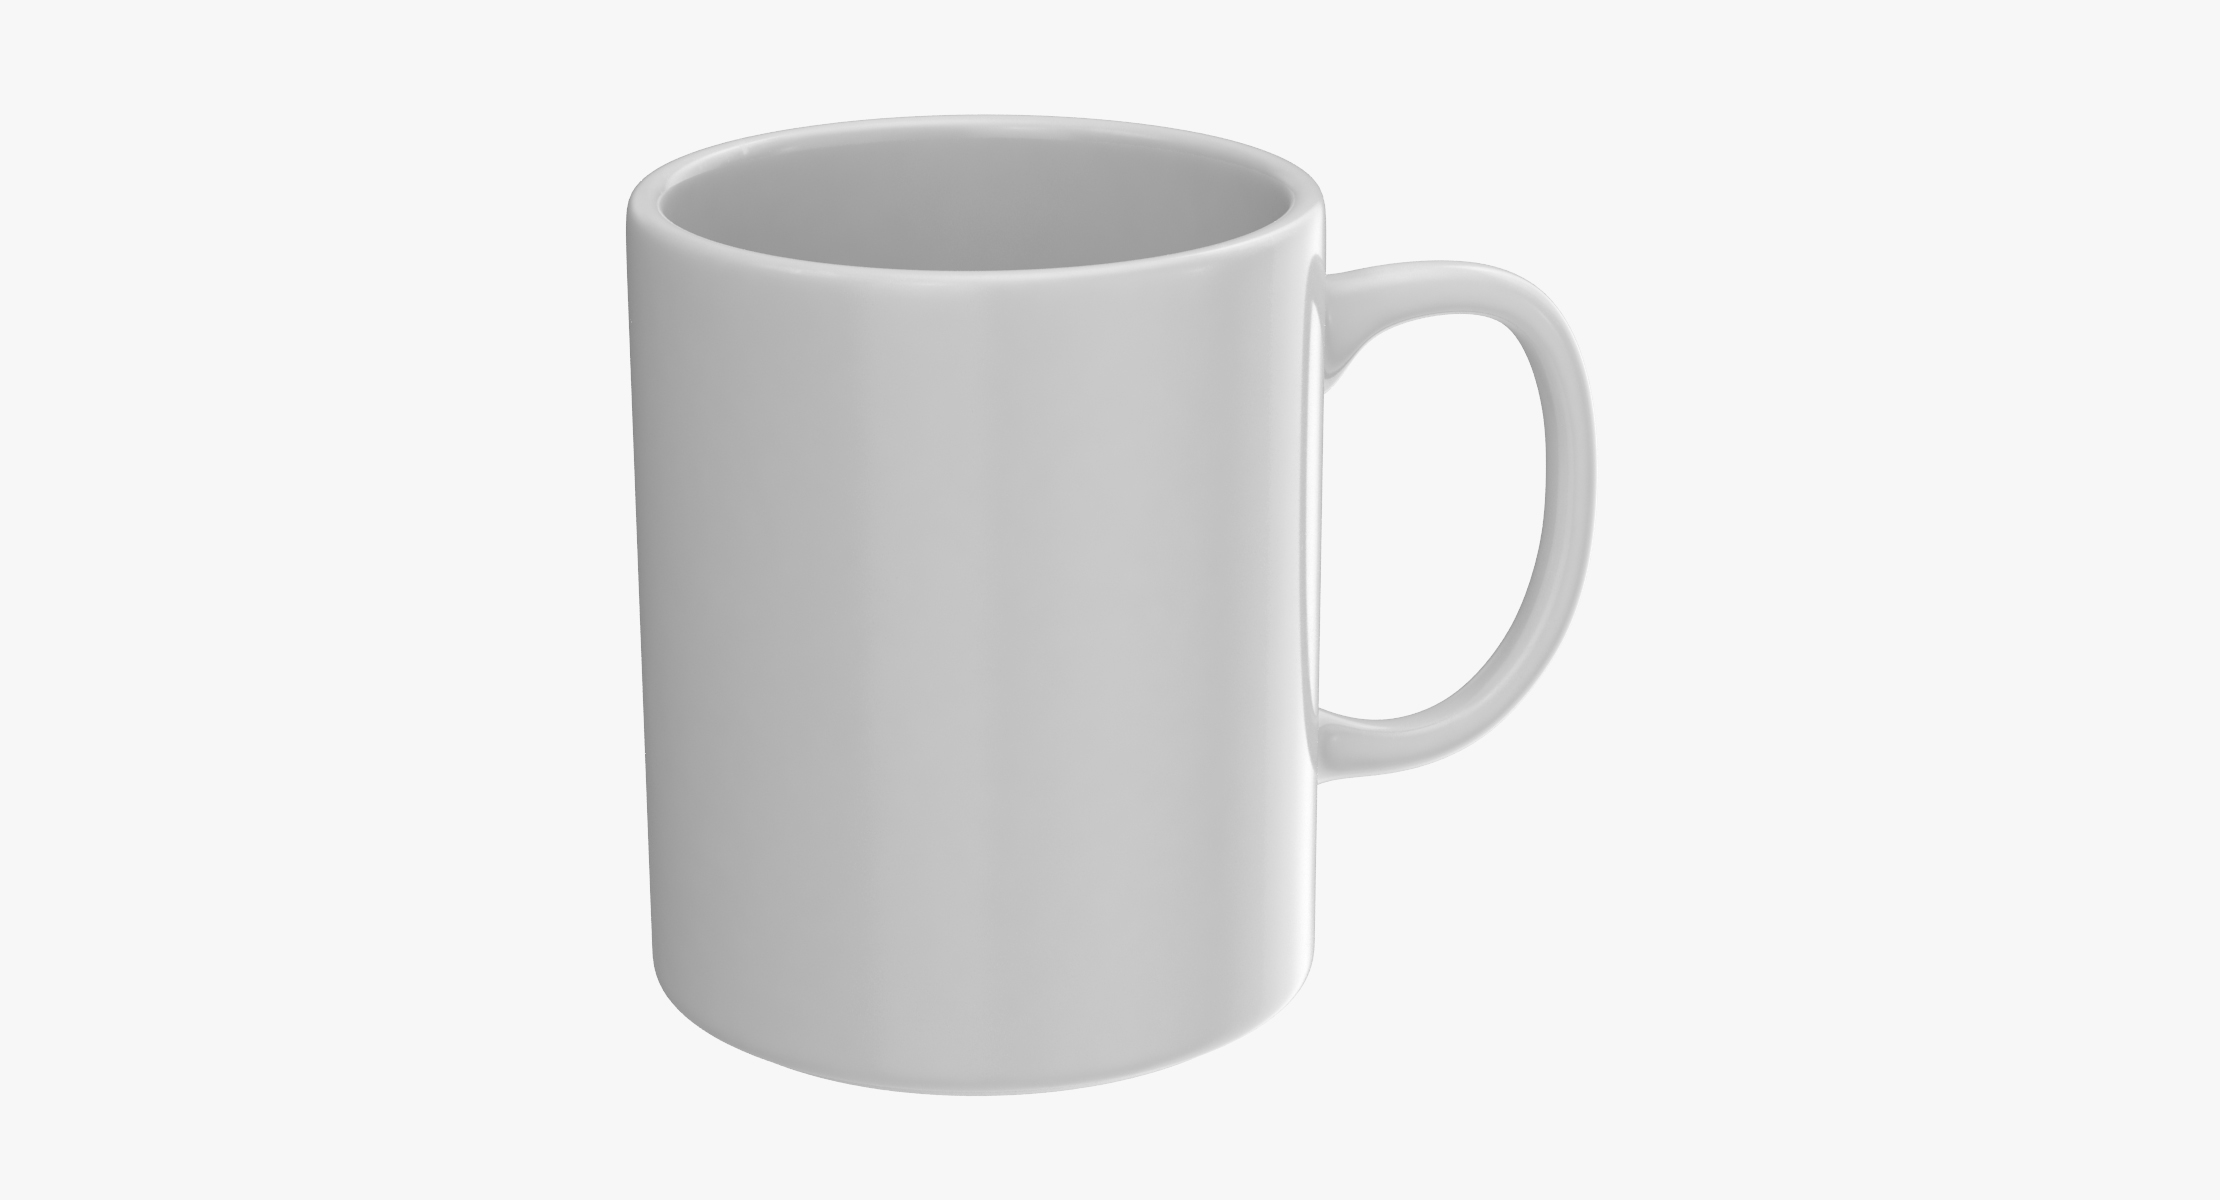 Image result for mug mockup